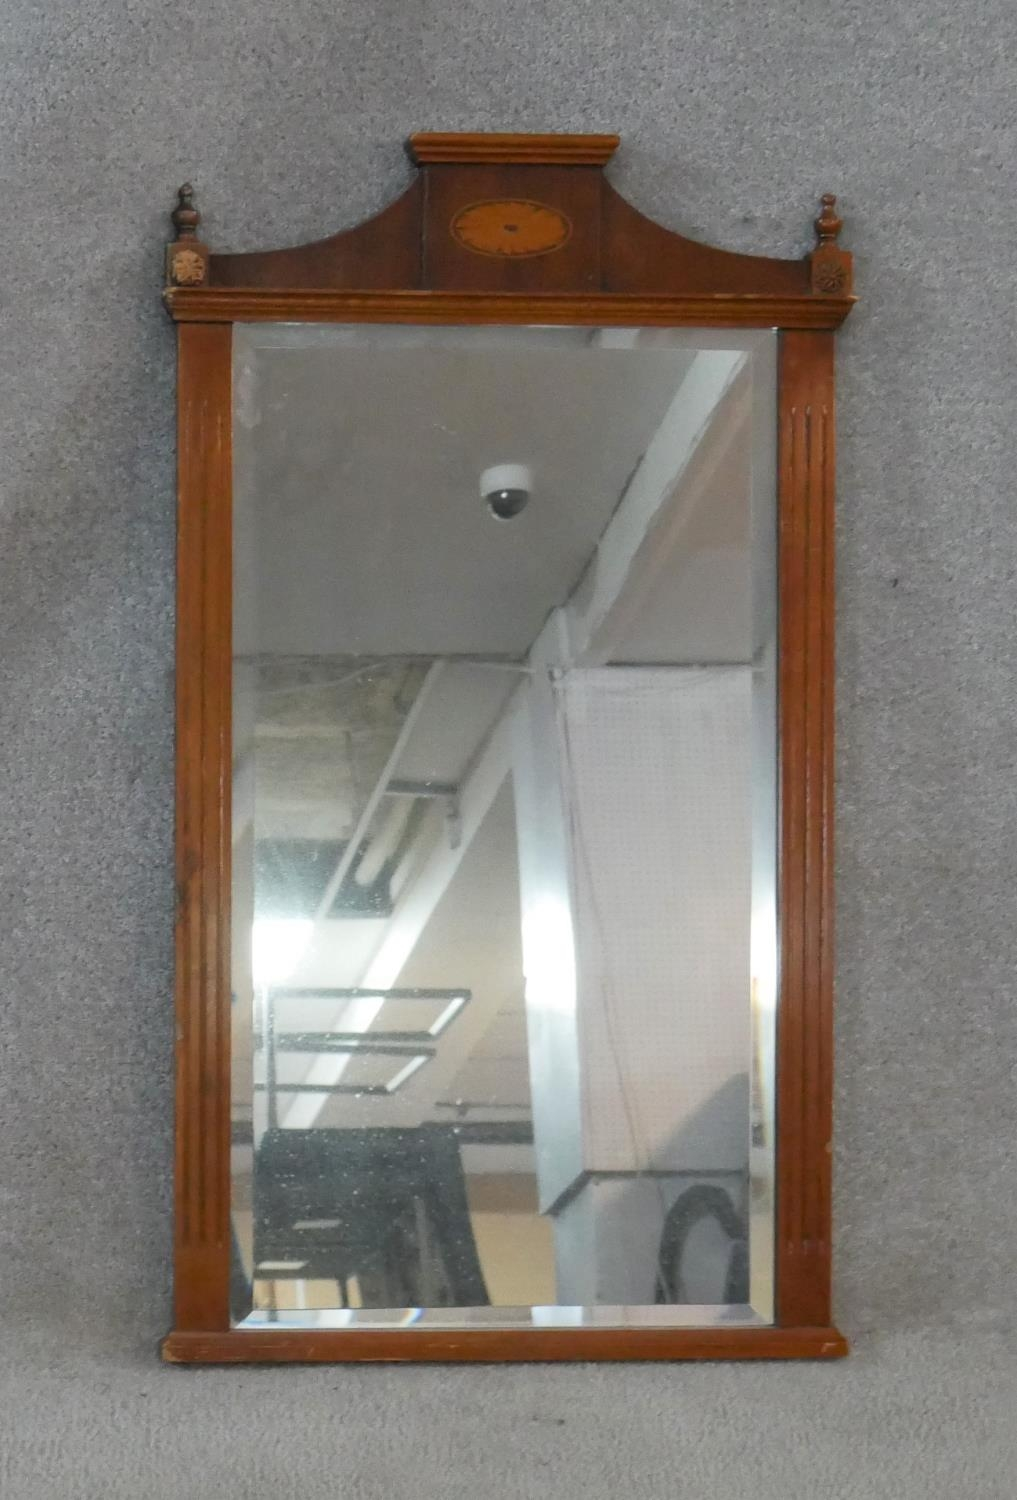 An Adam style yew framed wall mirror with inlaid patera and urn finials to the cresting and bevelled